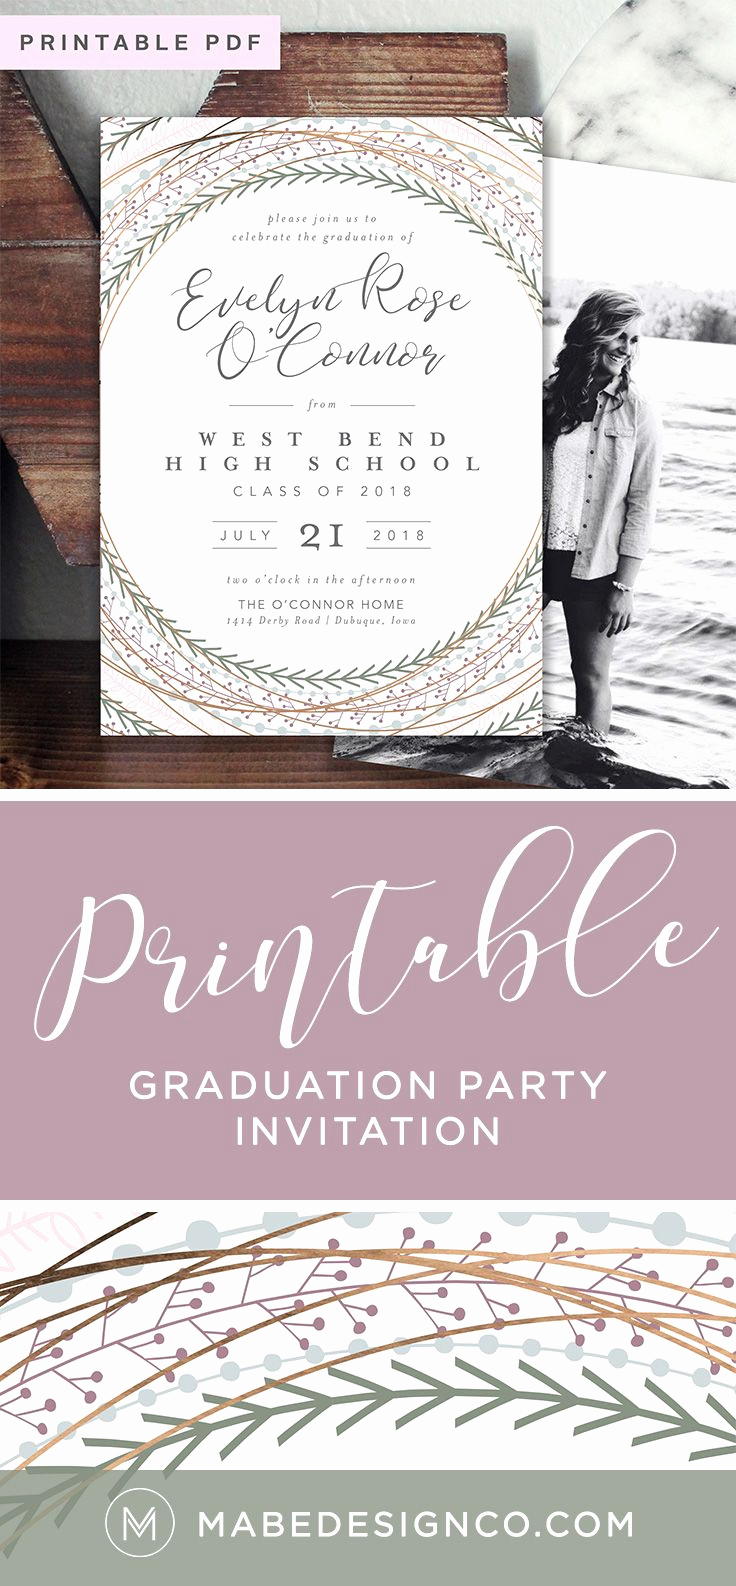 Wording for Graduation Party Invitation Awesome Best 25 Graduation Invitation Wording Ideas On Pinterest